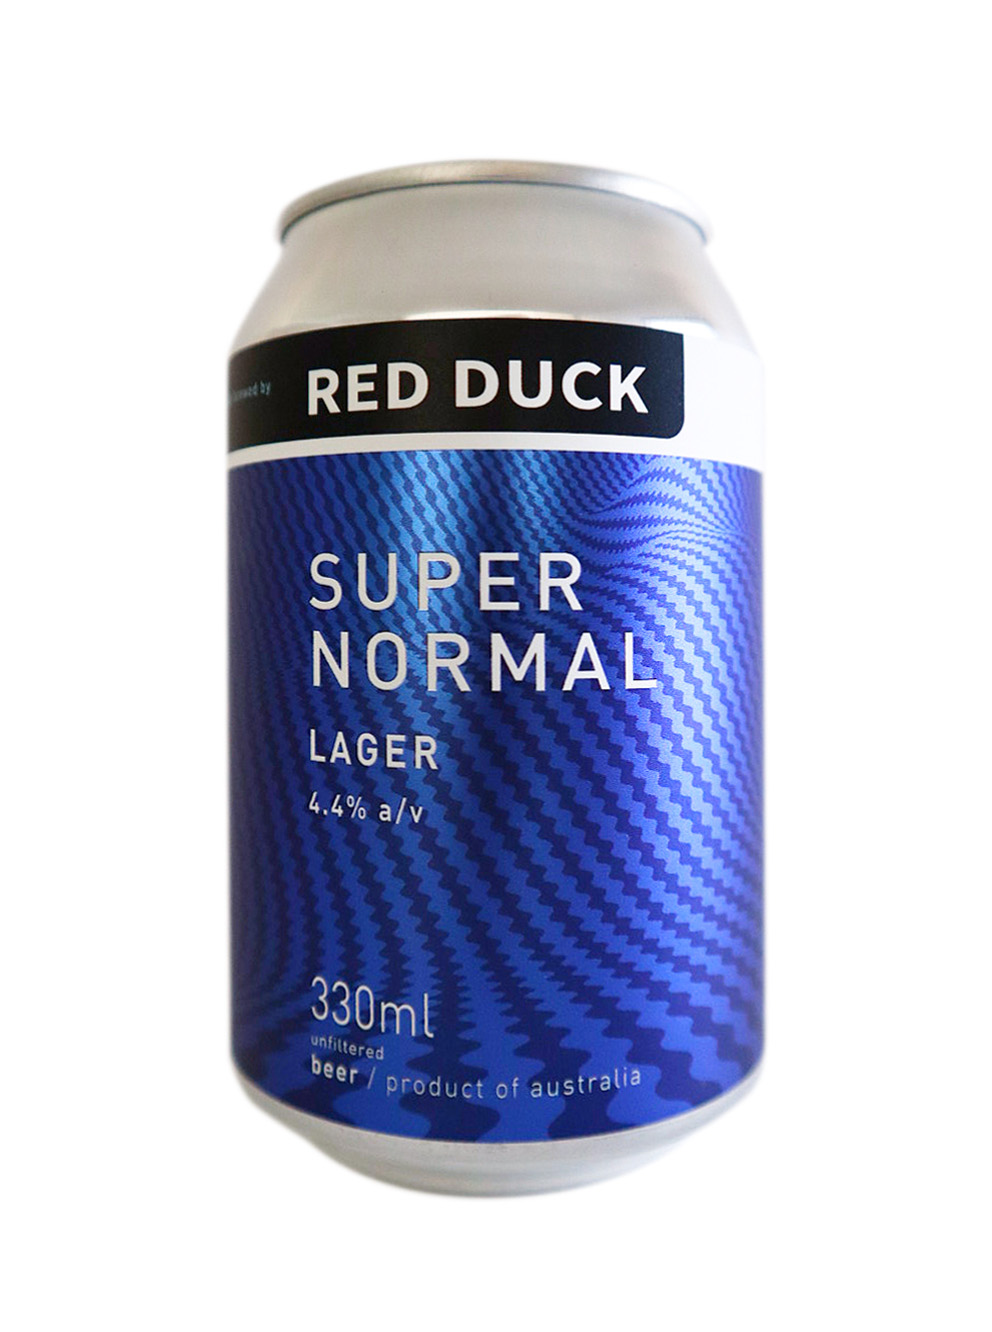 https://www.redduckbeer.com.au/wp-content/uploads/2020/09/Super-Normal-can-WEB.jpg